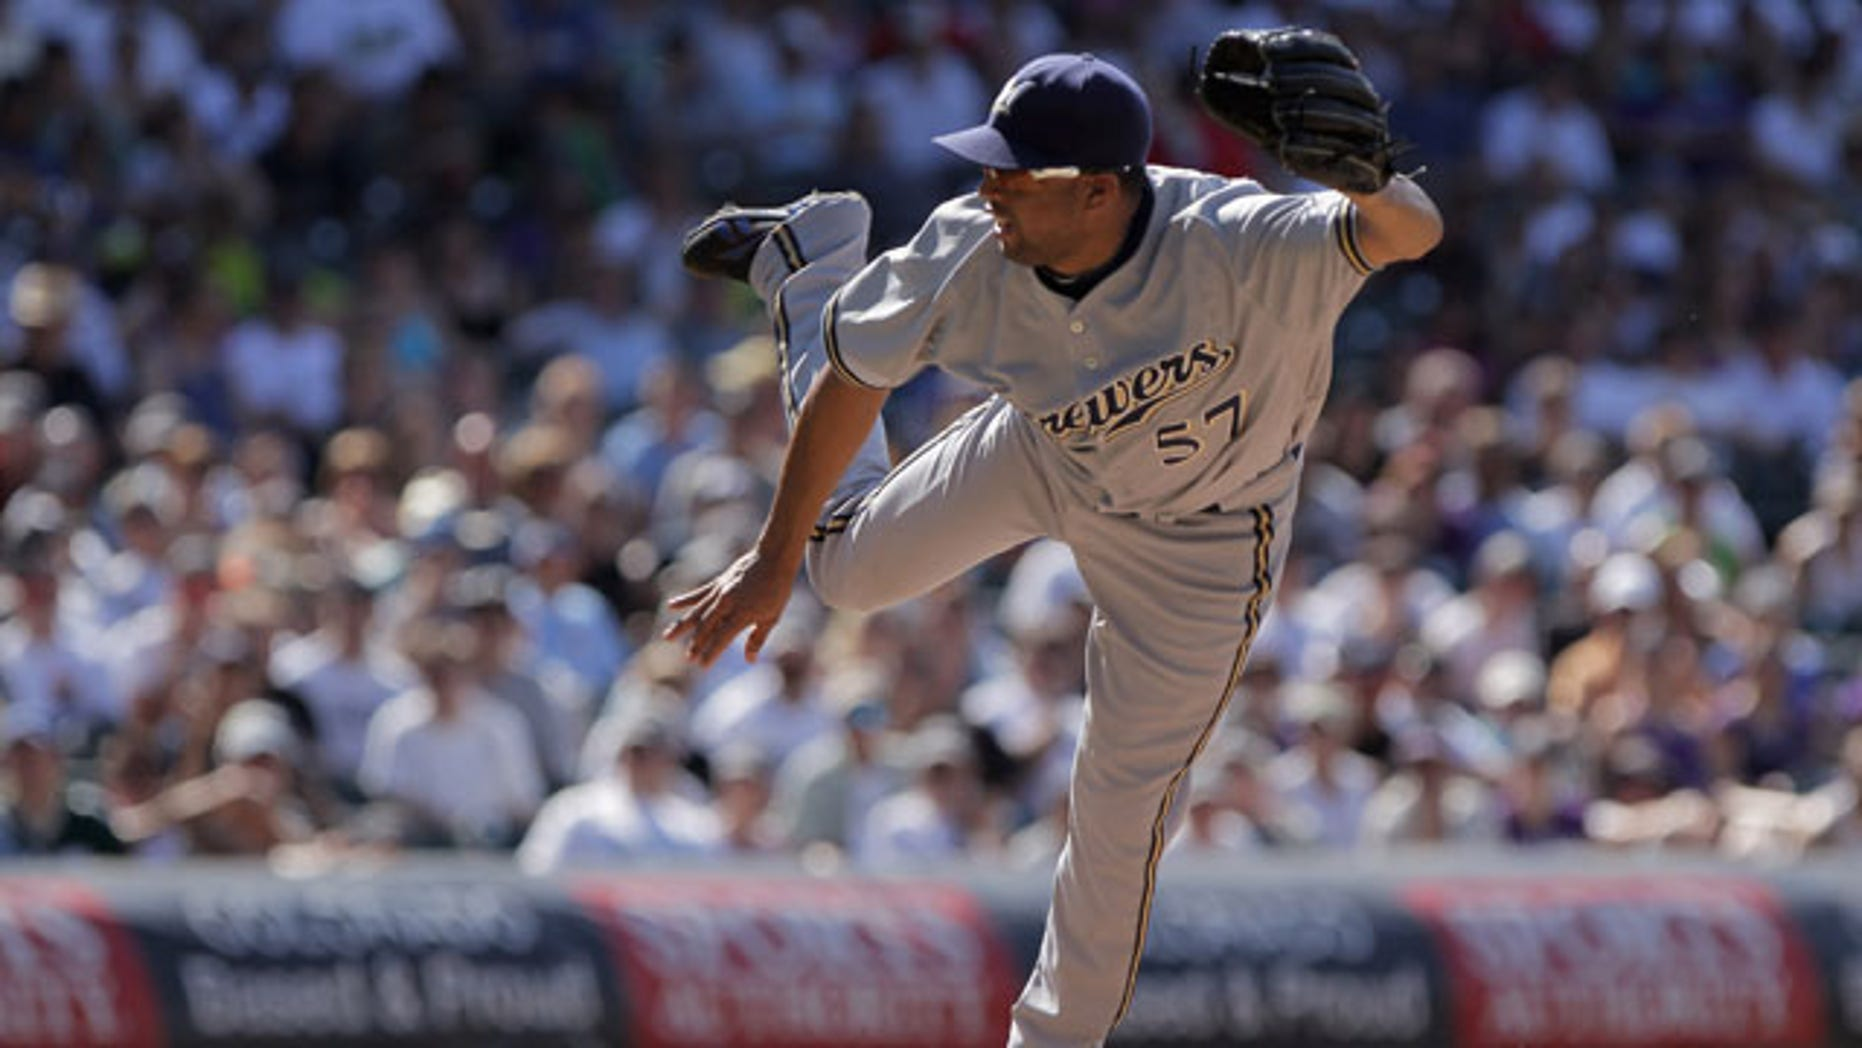 DENVER, CO - JULY 17:  Relief pitcher Francisco Rodriguez #57 of the Milwaukee Brewers delivers against the Colorado Rockies at Coors Field on July 17, 2011 in Denver, Colorado. Rodriguez earned a hold as they Brewers defeated the Rockies 4-3.  (Photo by Doug Pensinger/Getty Images)